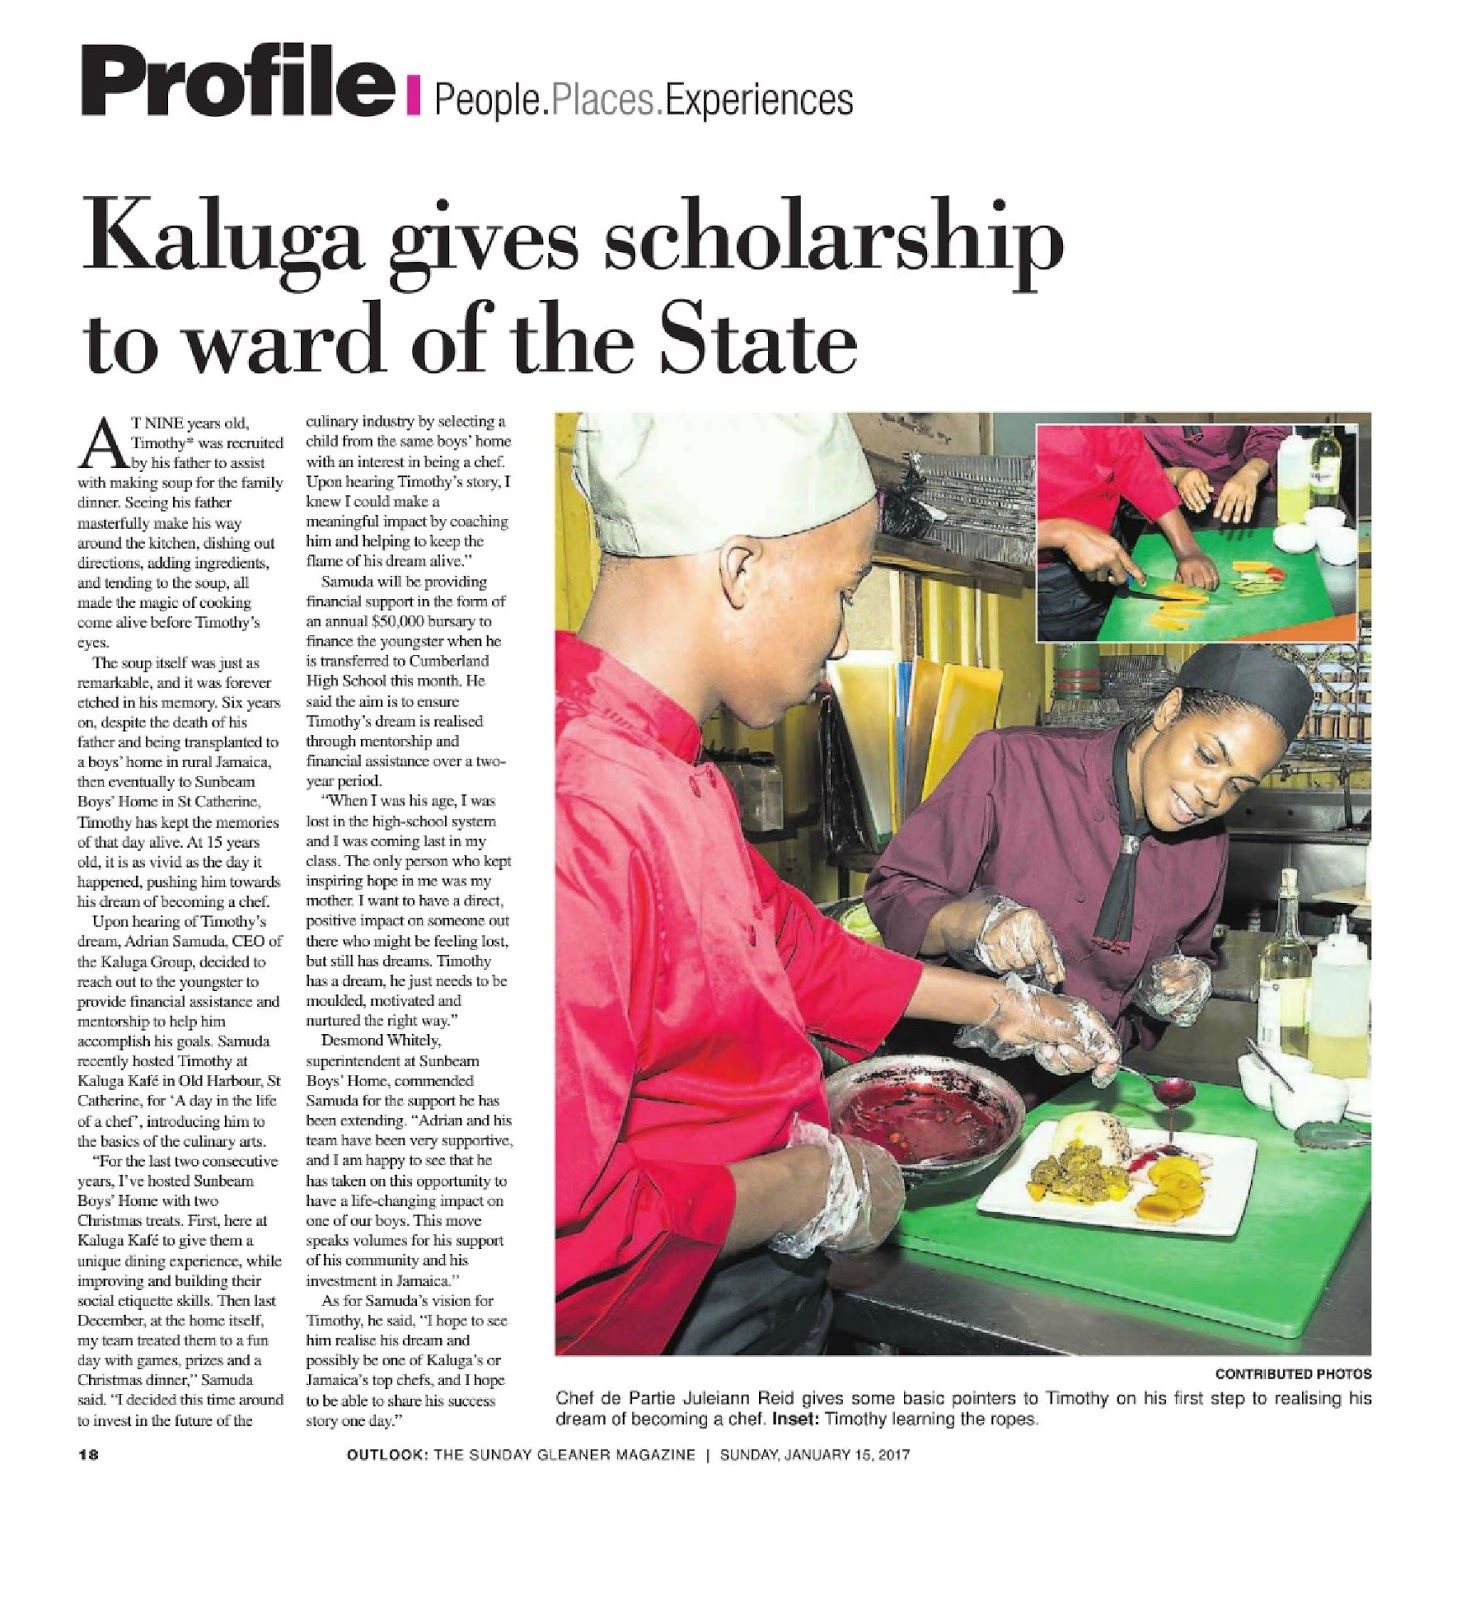 Kaluga gives scholarship to ward of the state